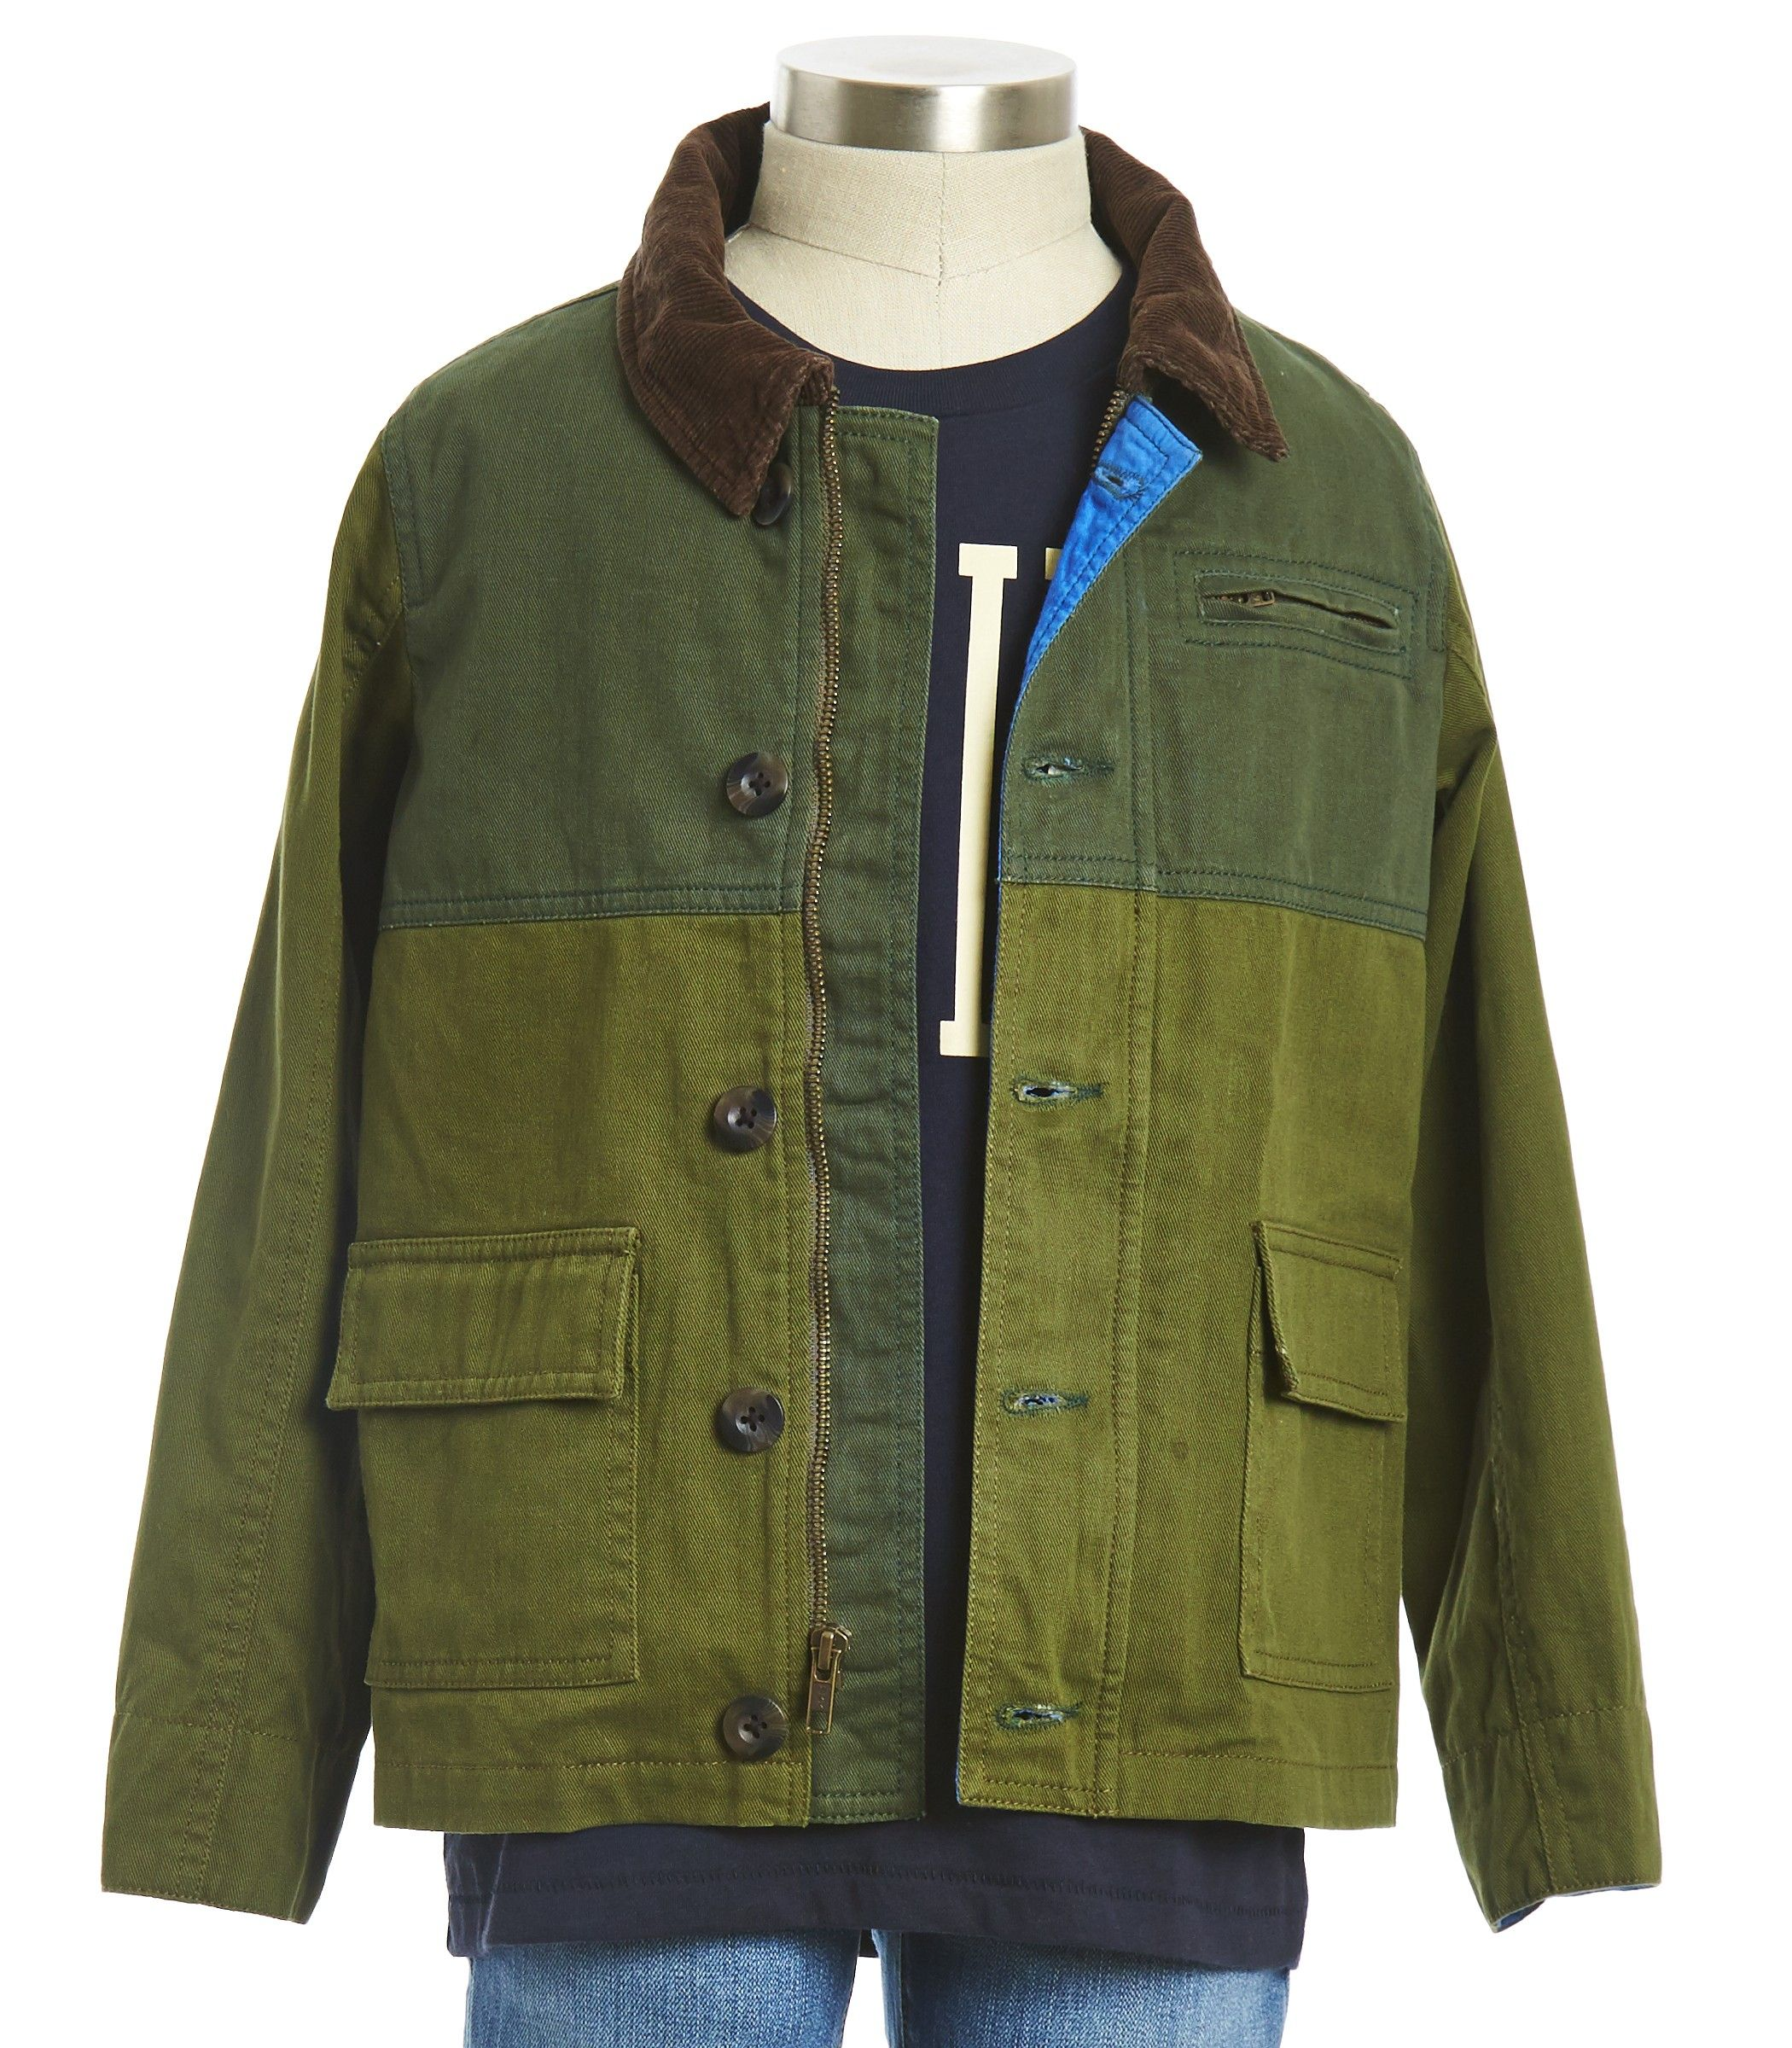 enlarge madewell barns fieldwalk category jackets jsp pdp m jacket barn jacketsandouterwear prdovr